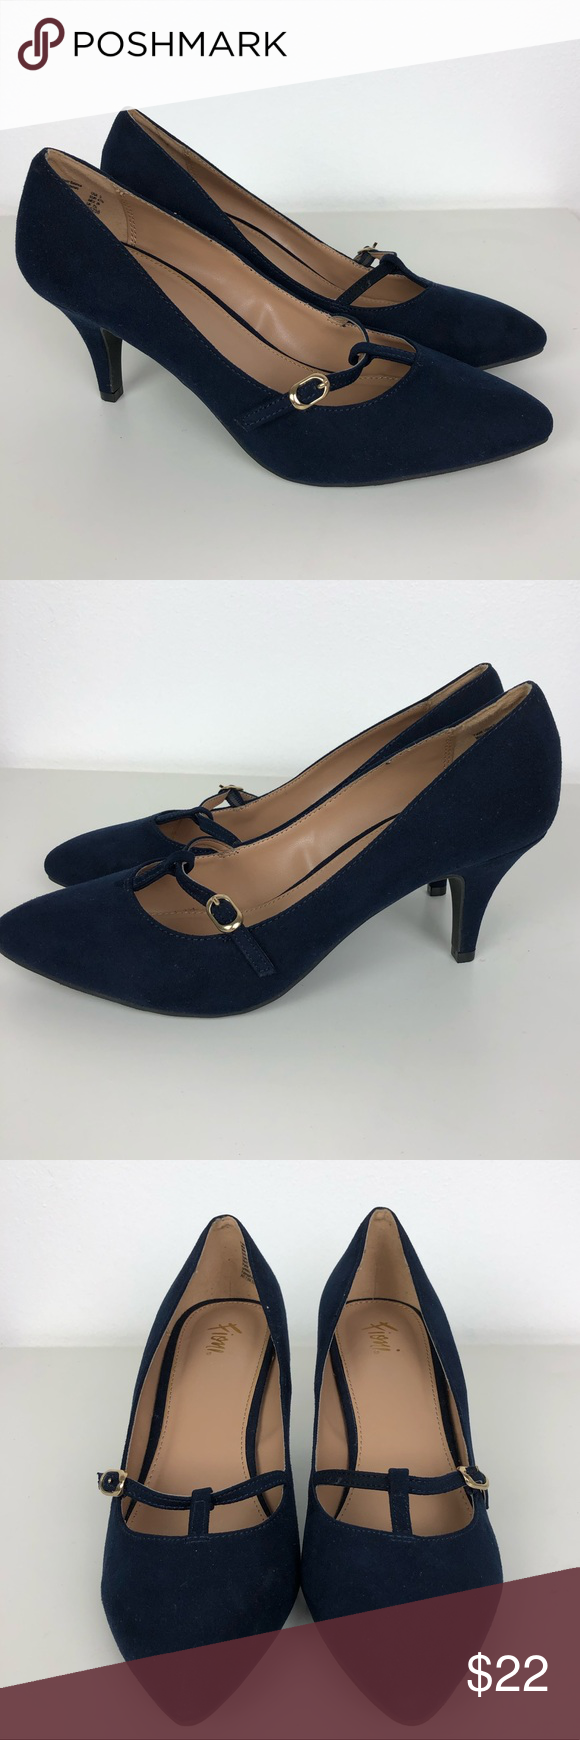 68160e136202 Fioni Lucy Navy T Strap Fabric Upper Low Heels-9 Women s Fioni Lucy T  Strap